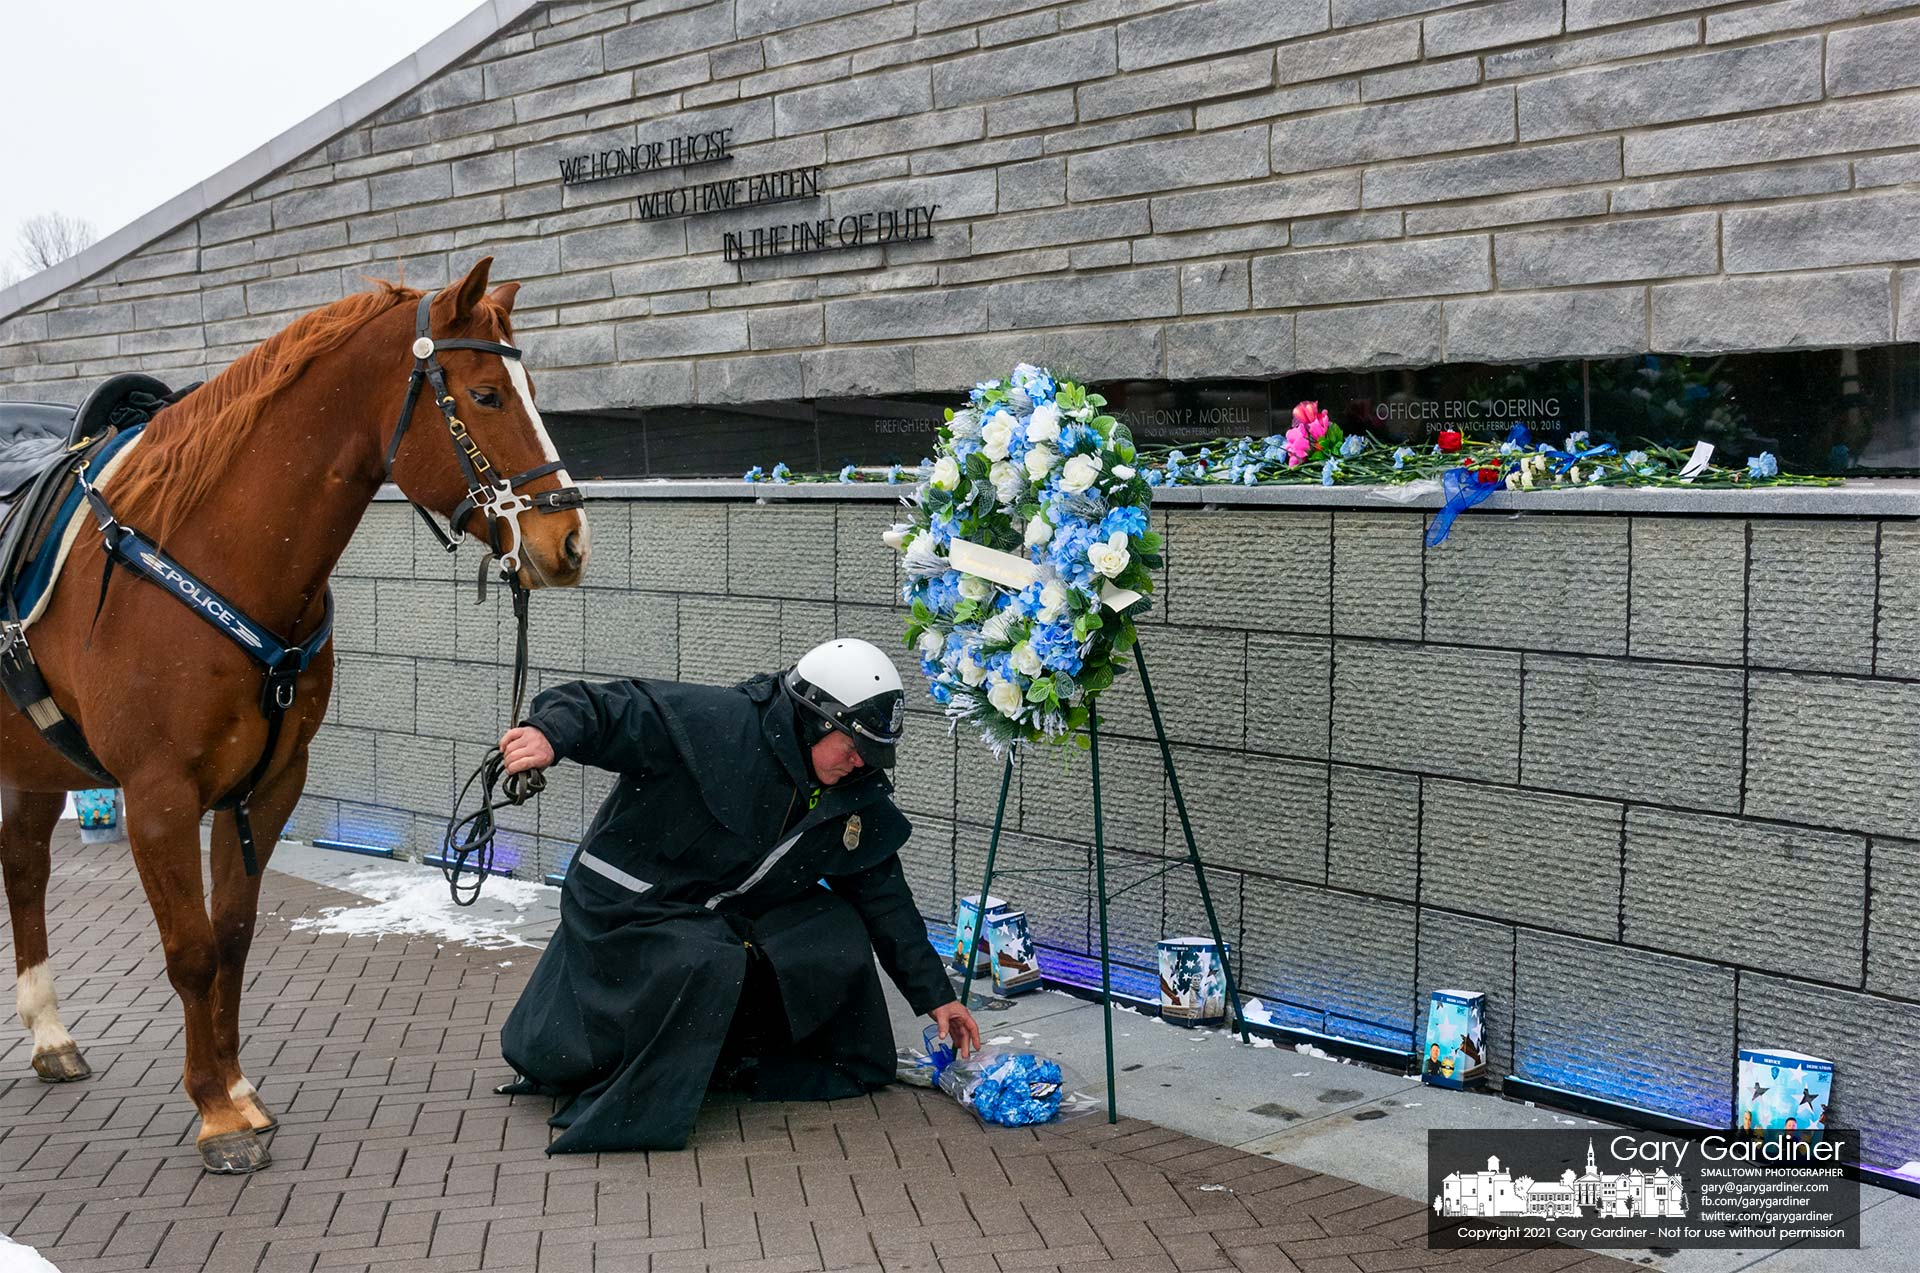 A Columbus Police Mounted Patrol officer lays flowers at First Responders Park in Westerville on the anniversary of the deaths of two officers killed while answering a domestic violence call. My Final Photo for Feb. 10, 2021.